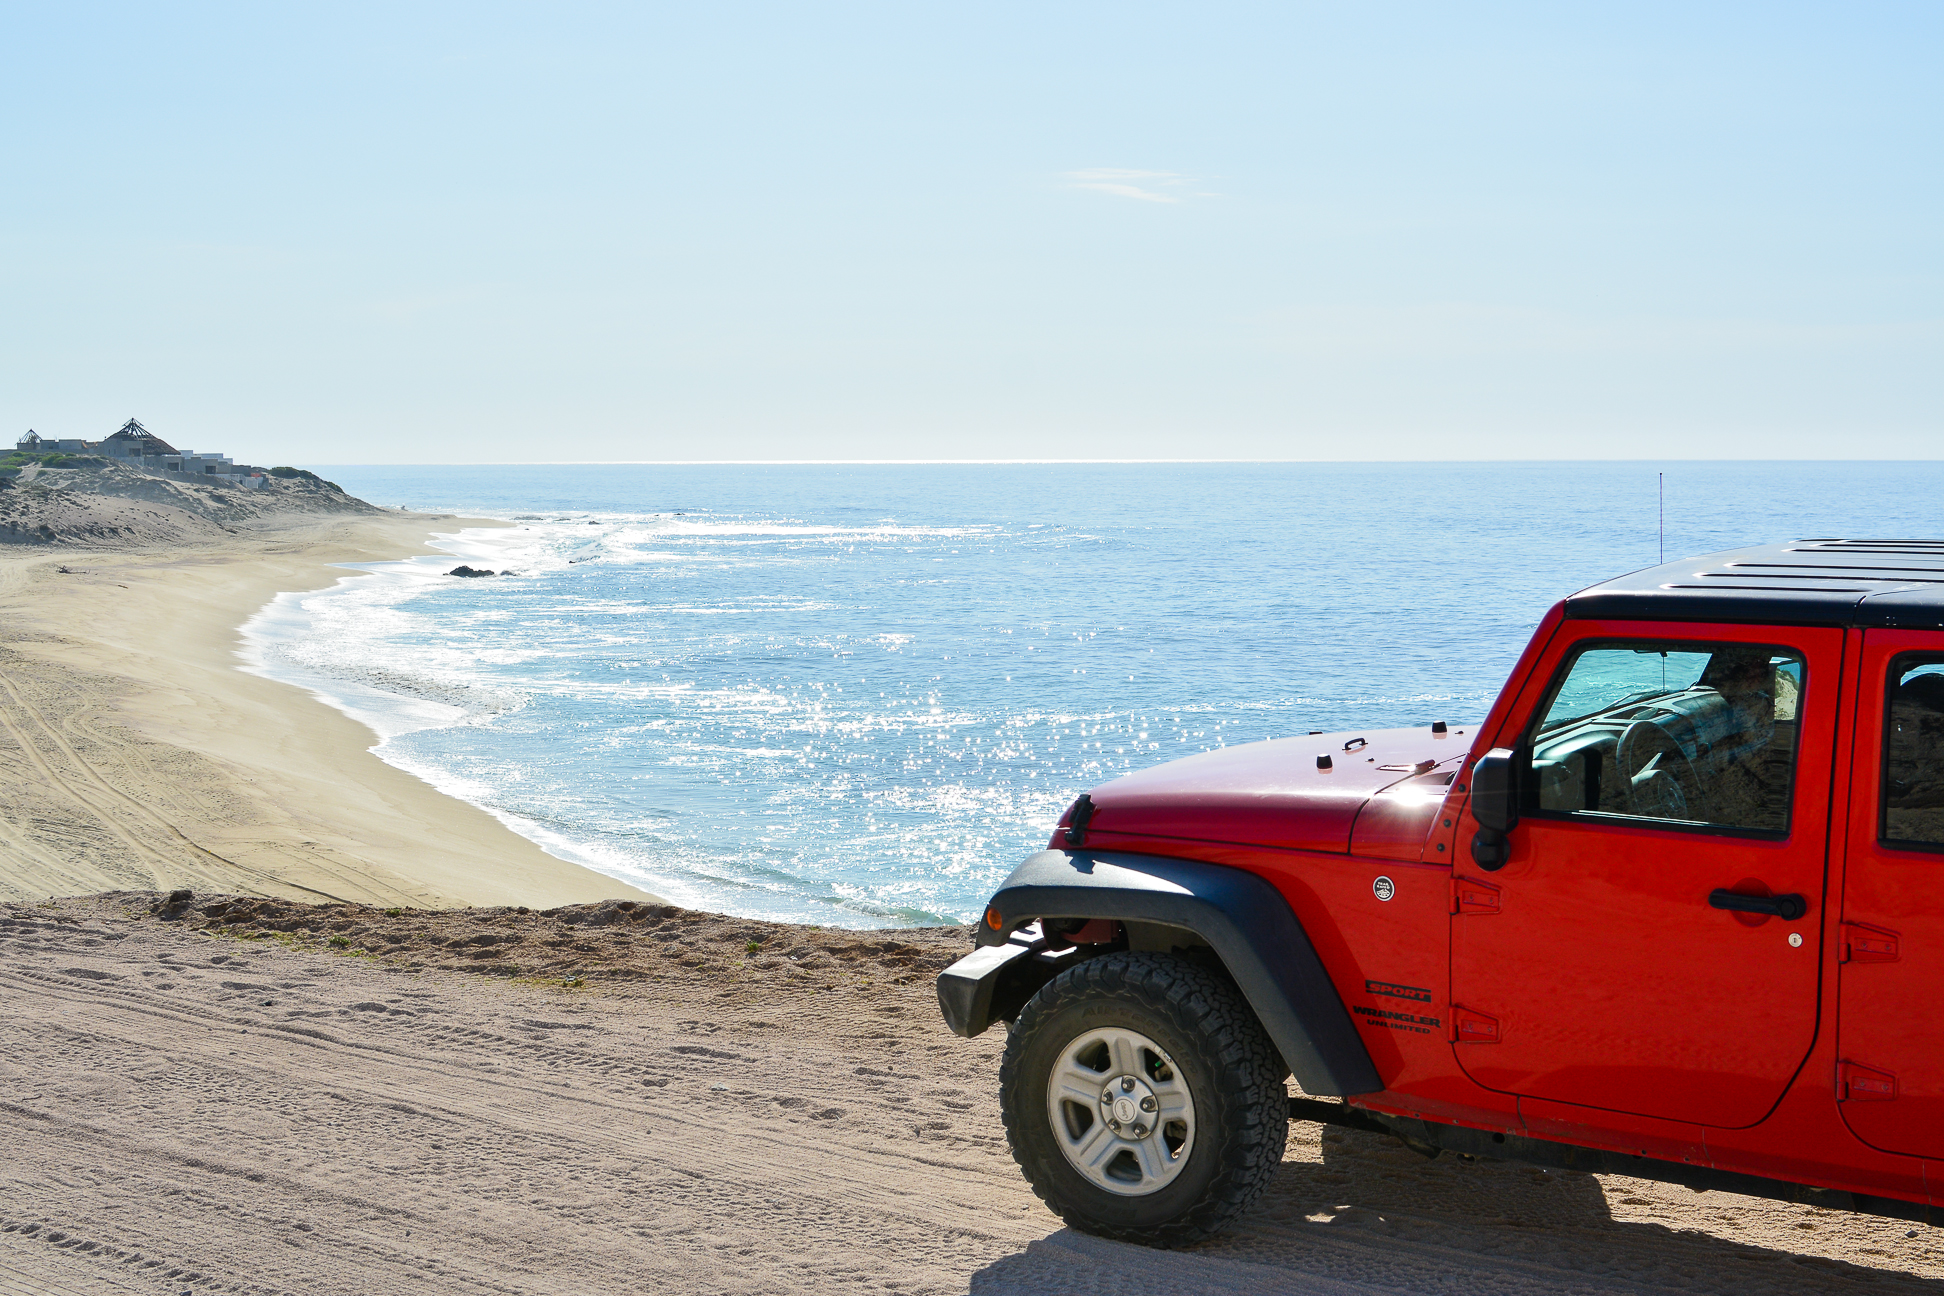 10% off Private jeep tour to Cabo Plumo for reef snorkeling